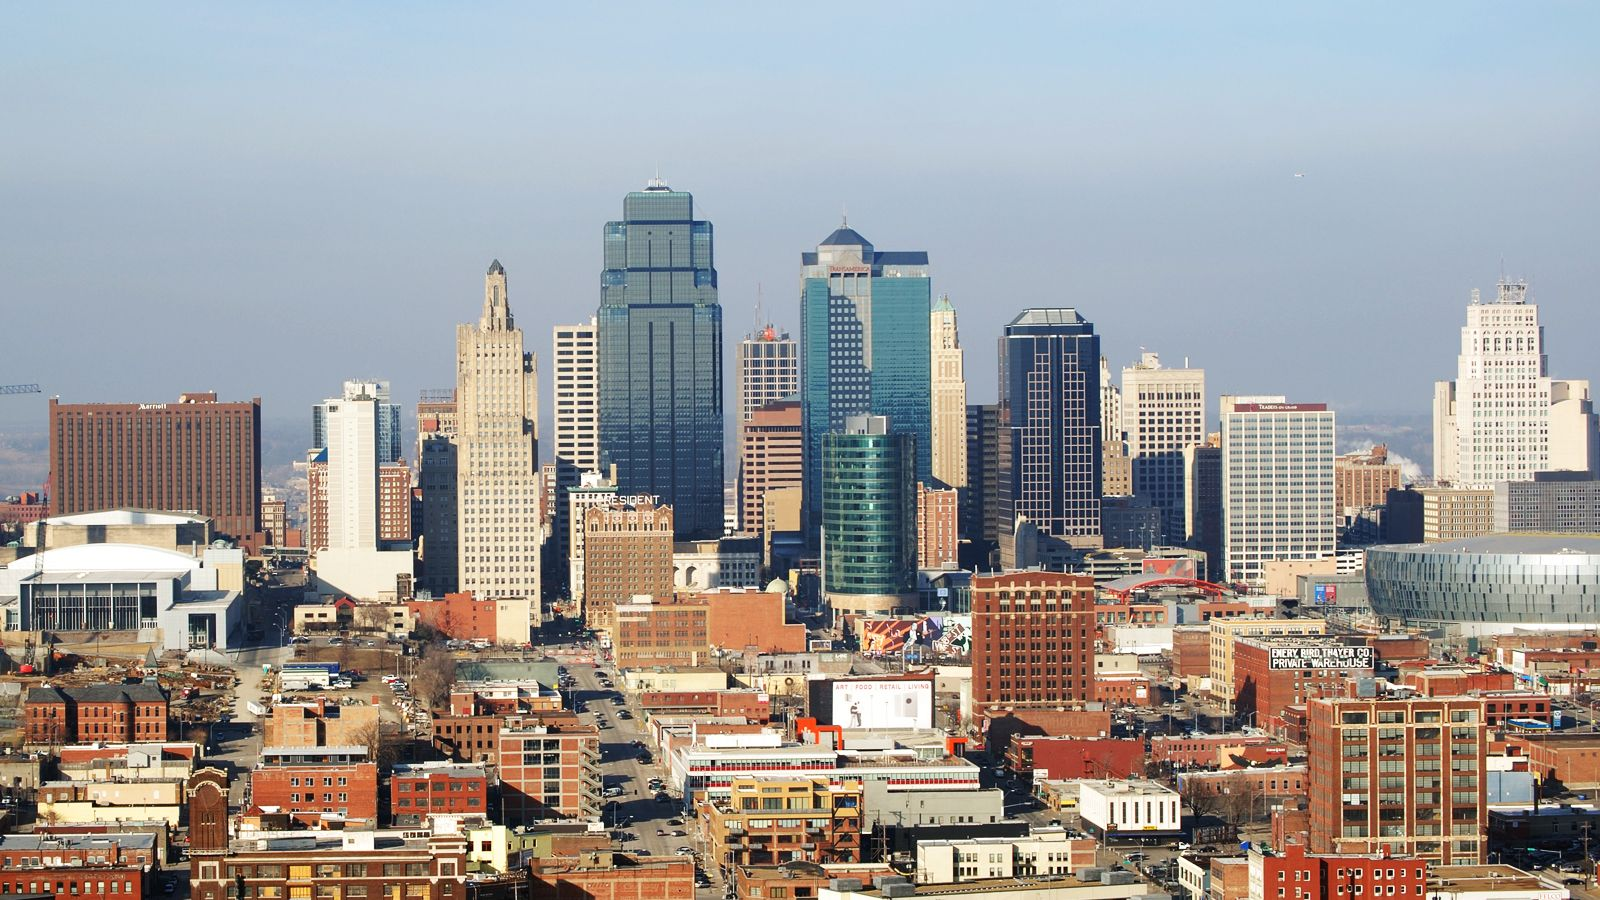 kansas city skyline during the day